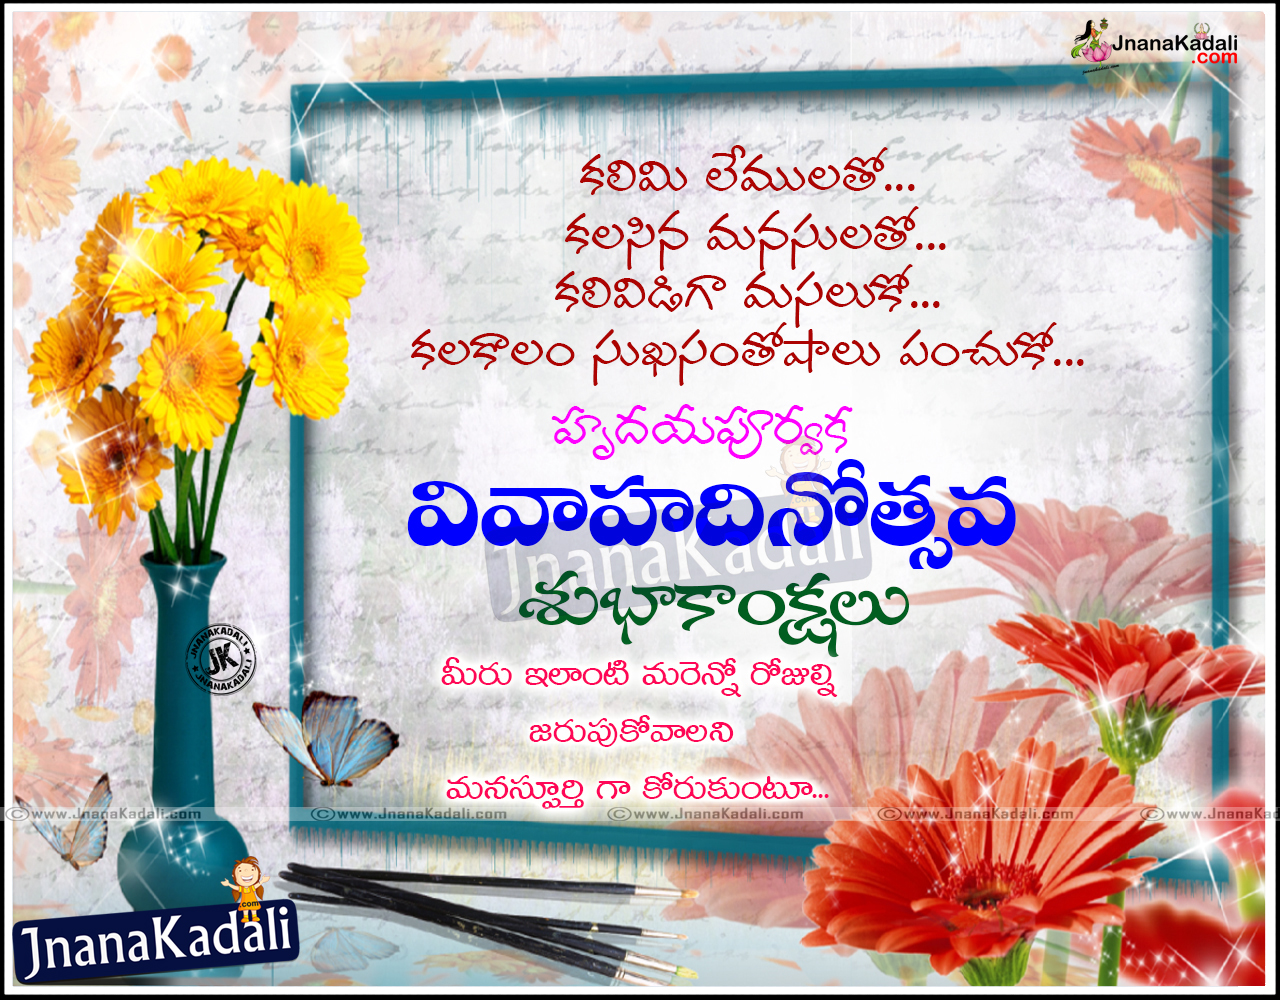 Wedding Anniversary Wishes In Telugu Hd Images Gadget And Pc